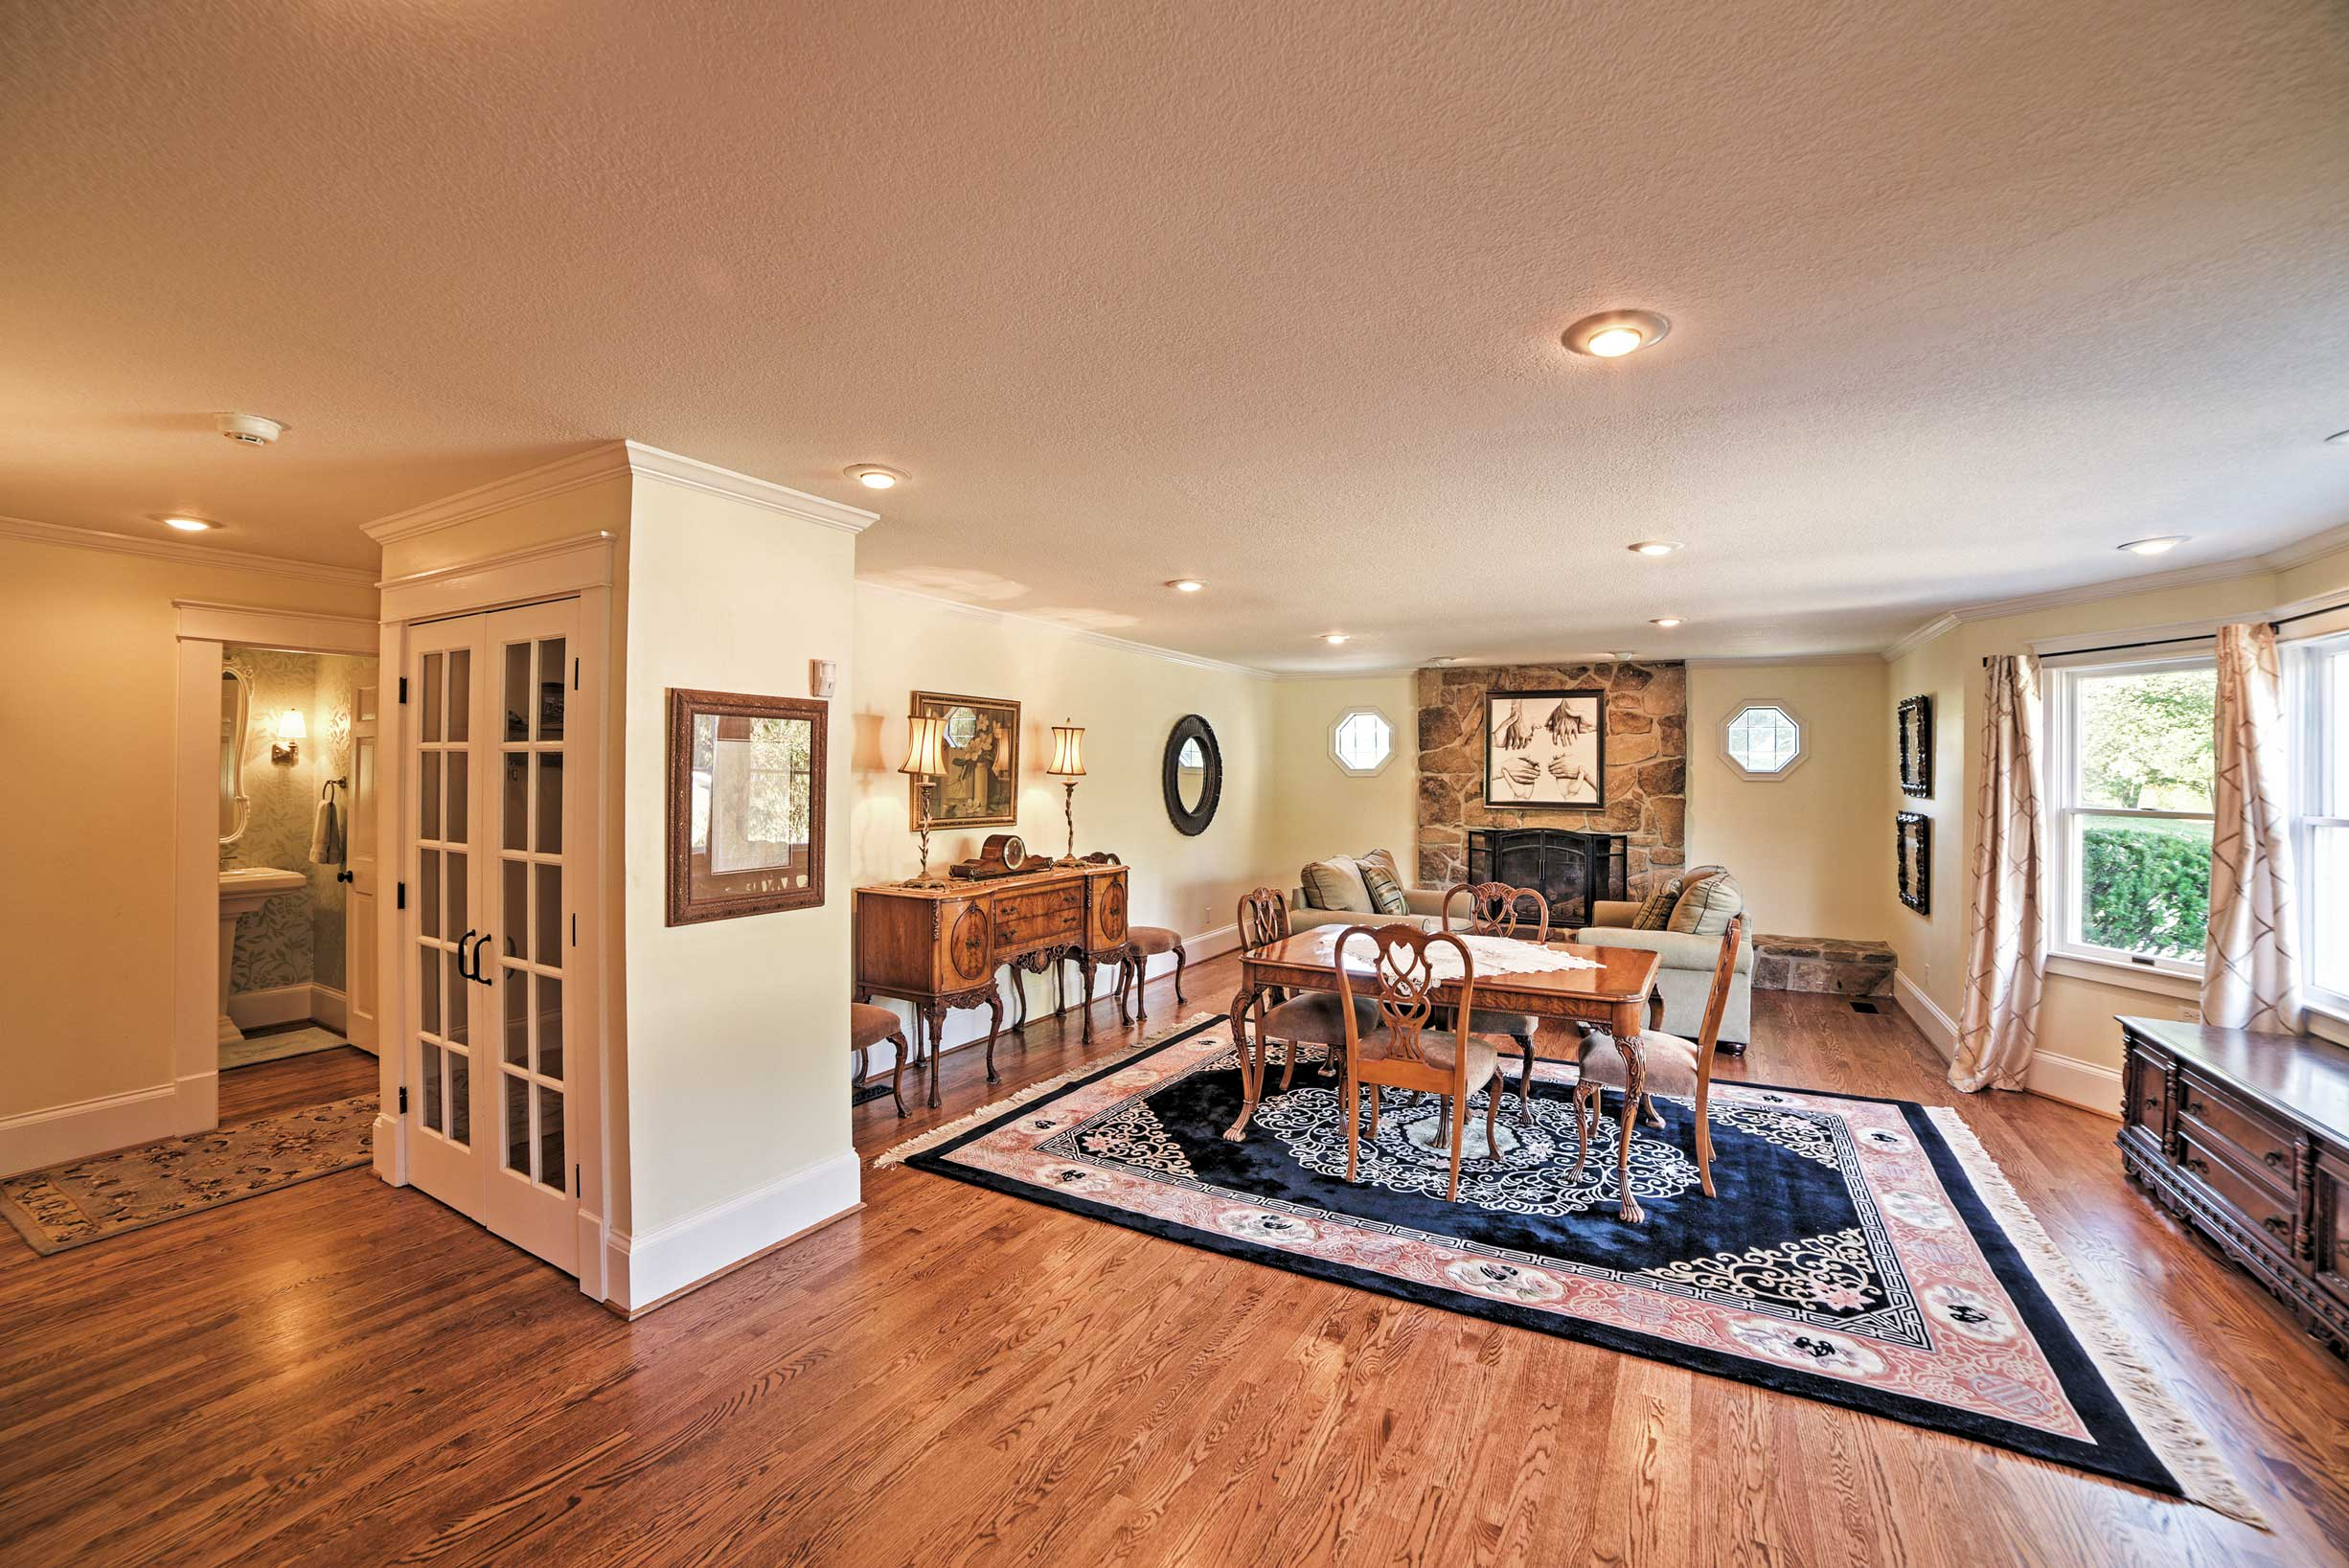 Step inside to find a warm, inviting interior.